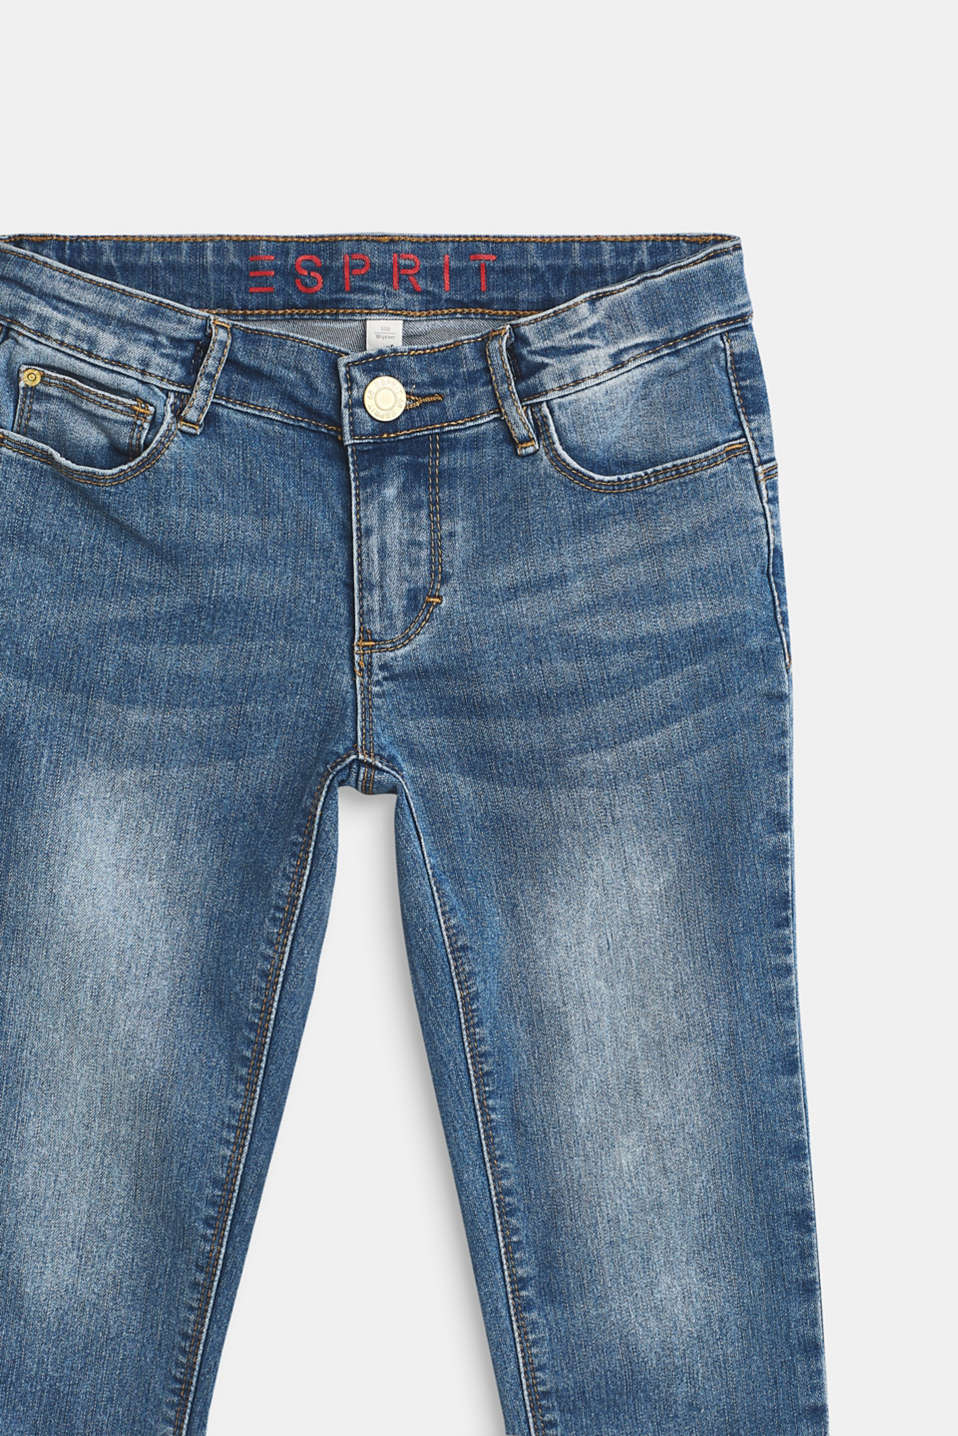 Stretch capri jeans with frayed hems, LCMEDIUM WASH DE, detail image number 3